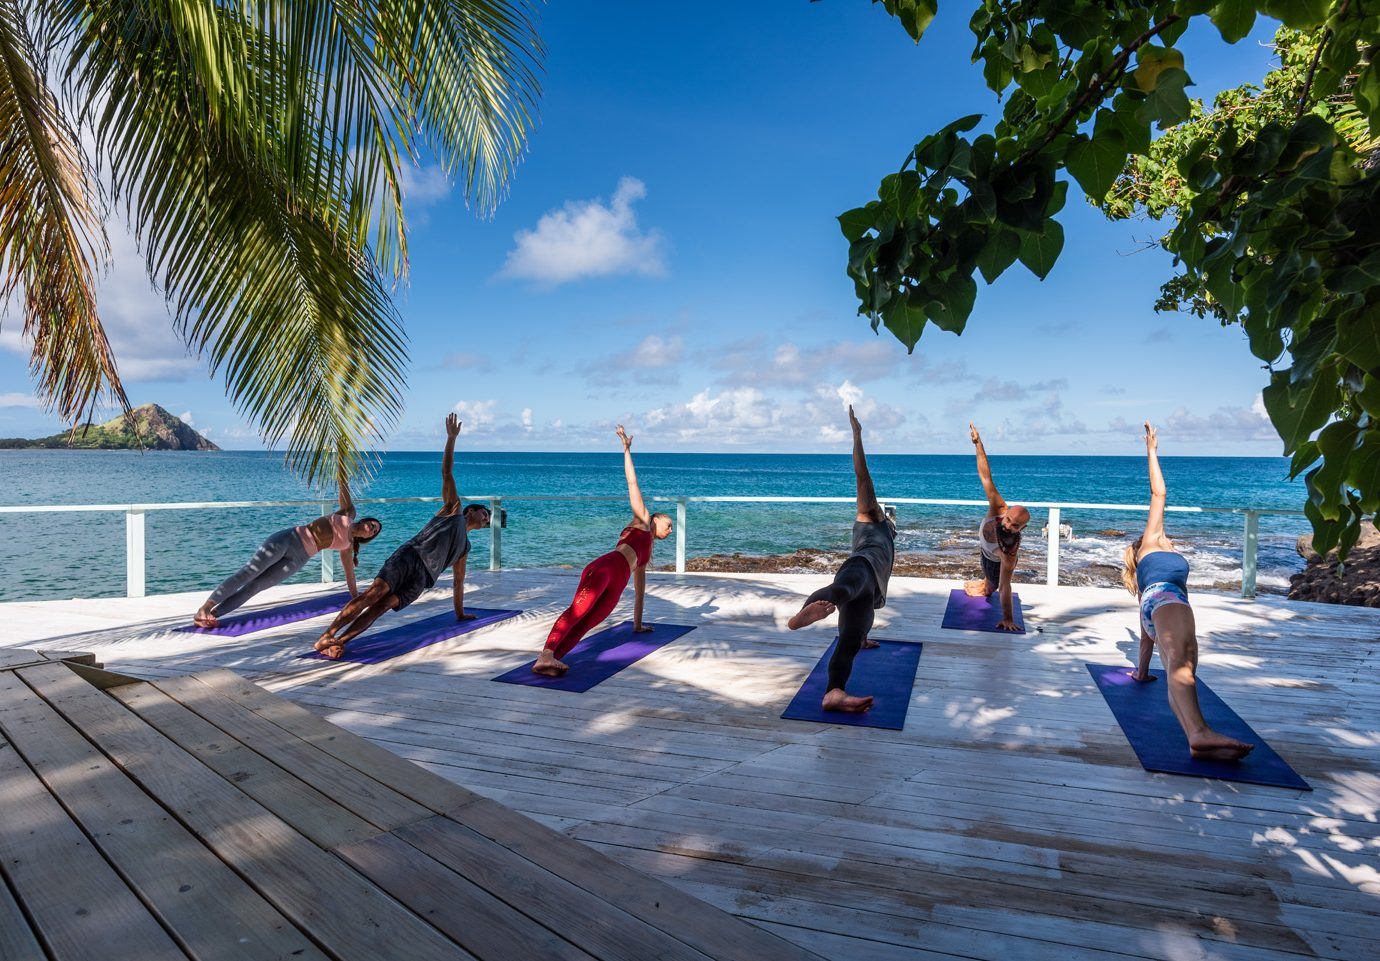 Outdoor Yoga at The BodyHoliday, St. Lucia